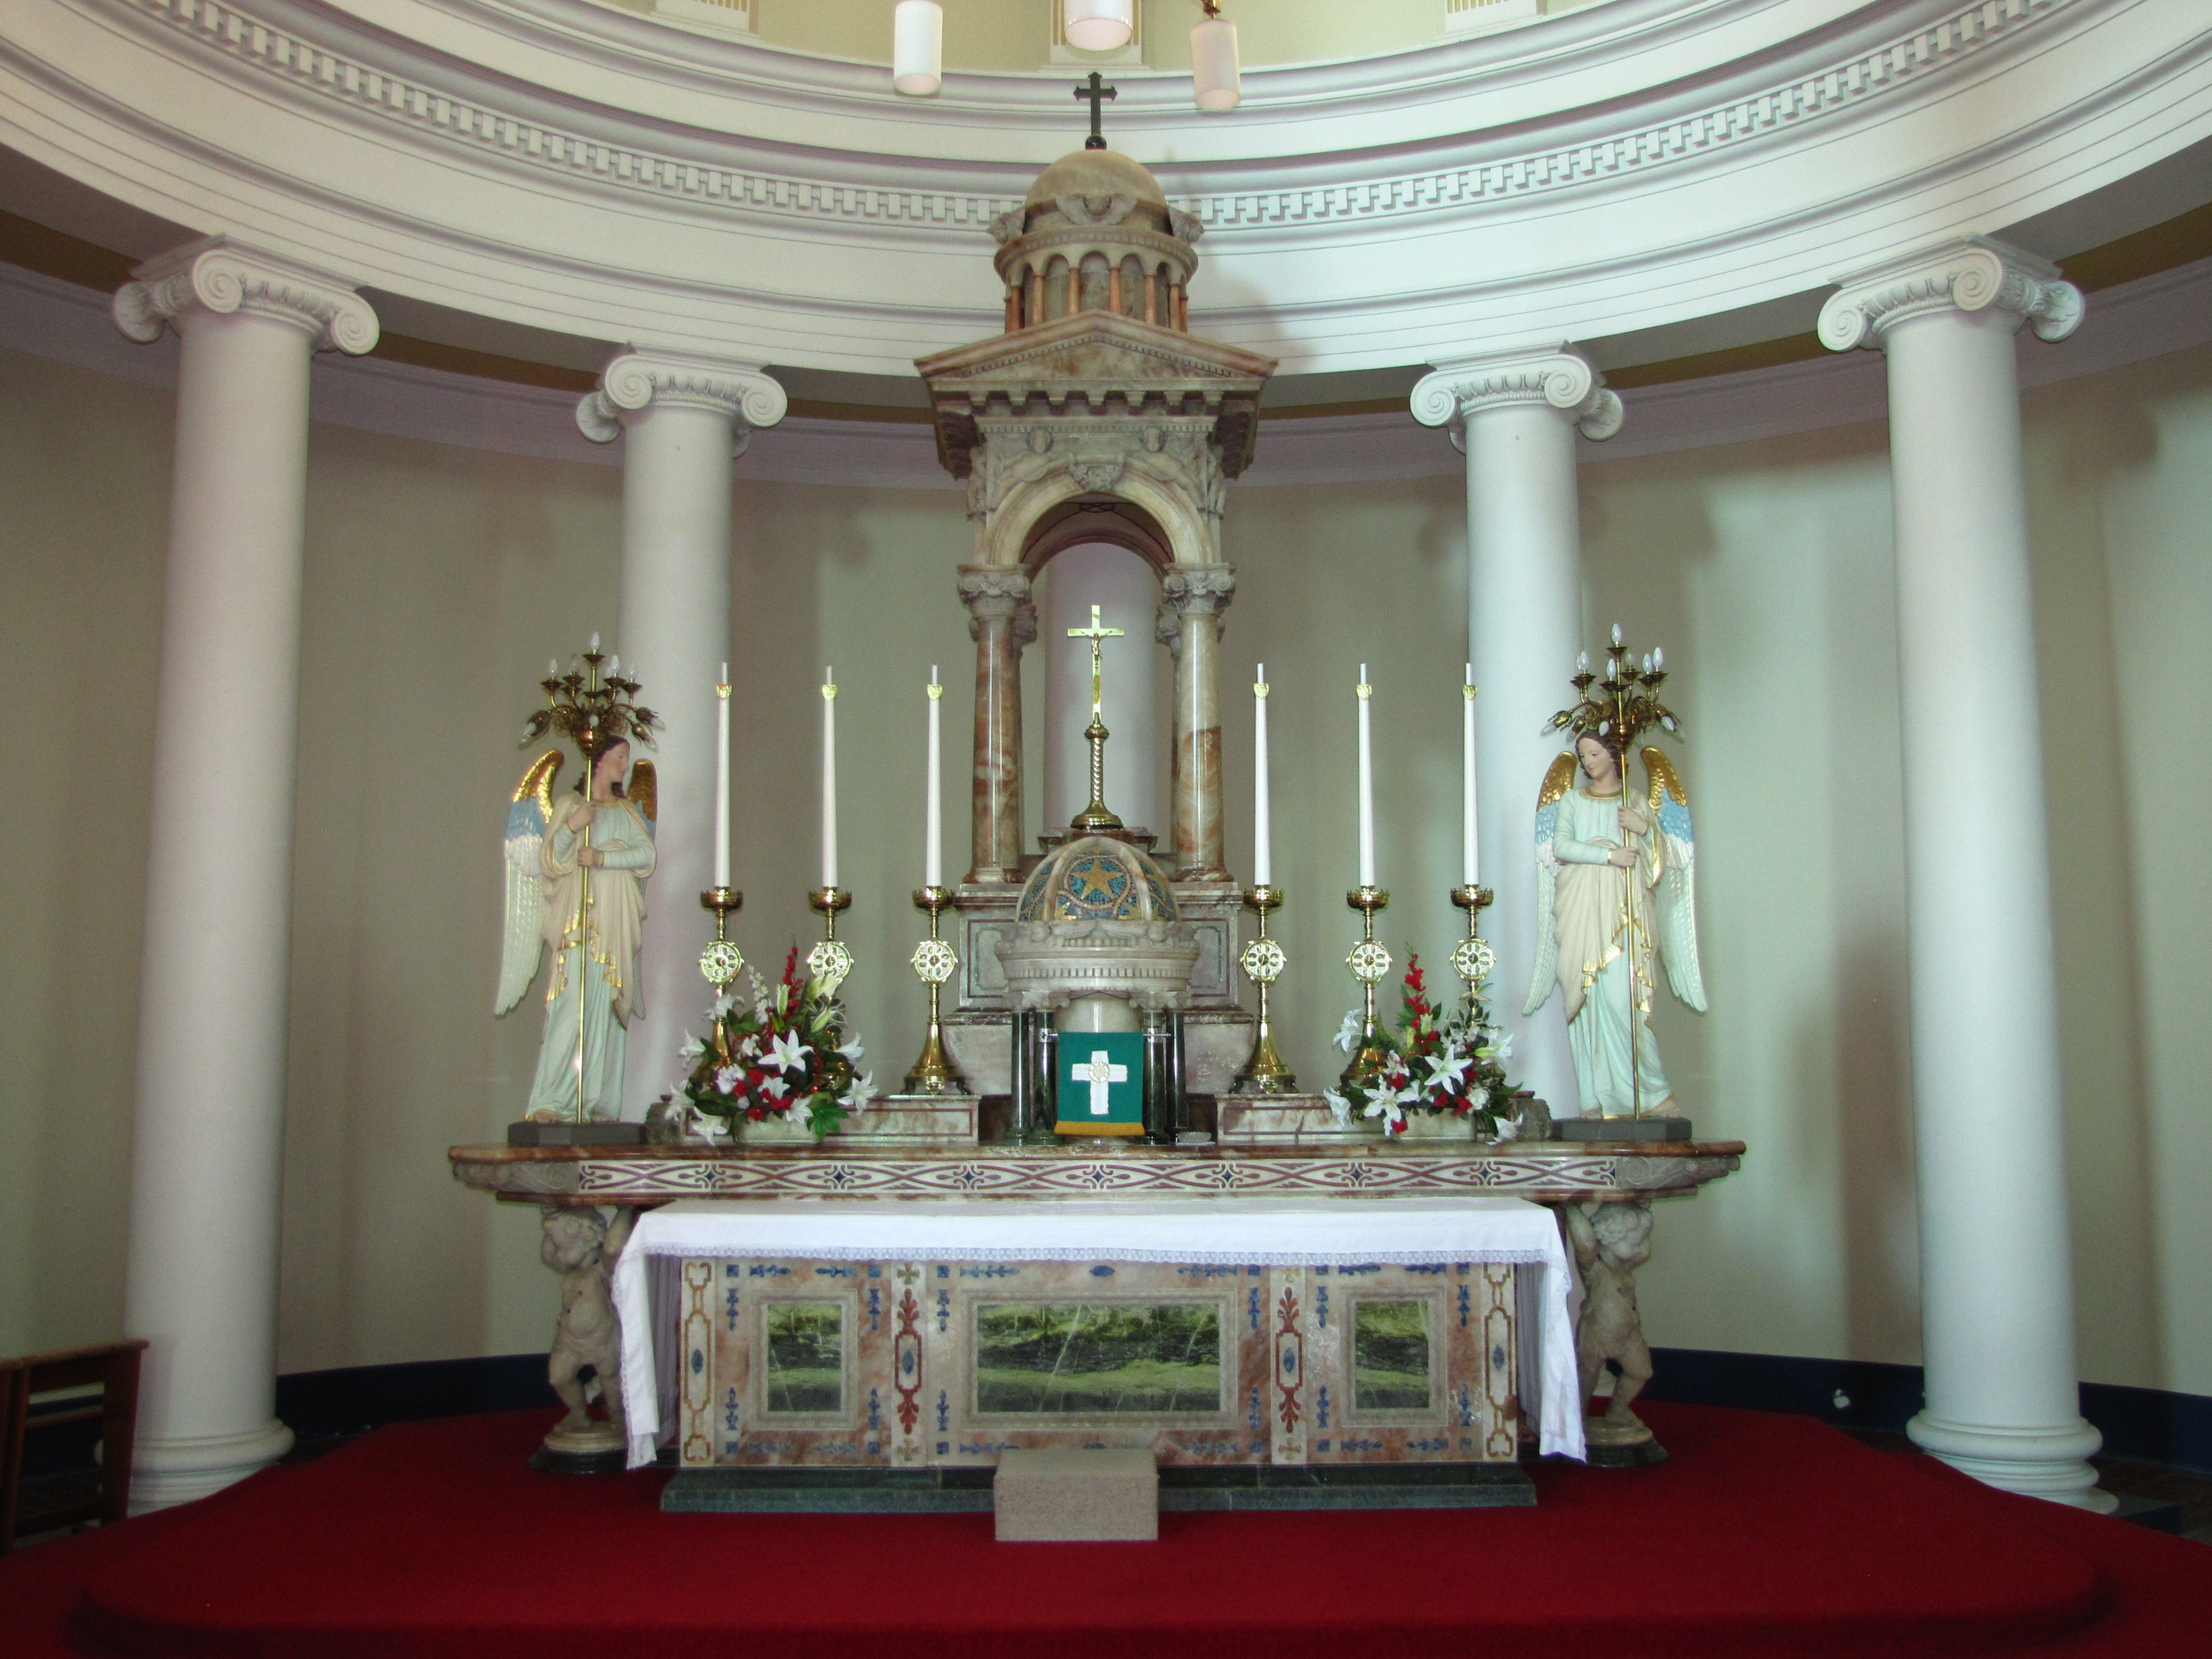 The High Altar installed in 1912